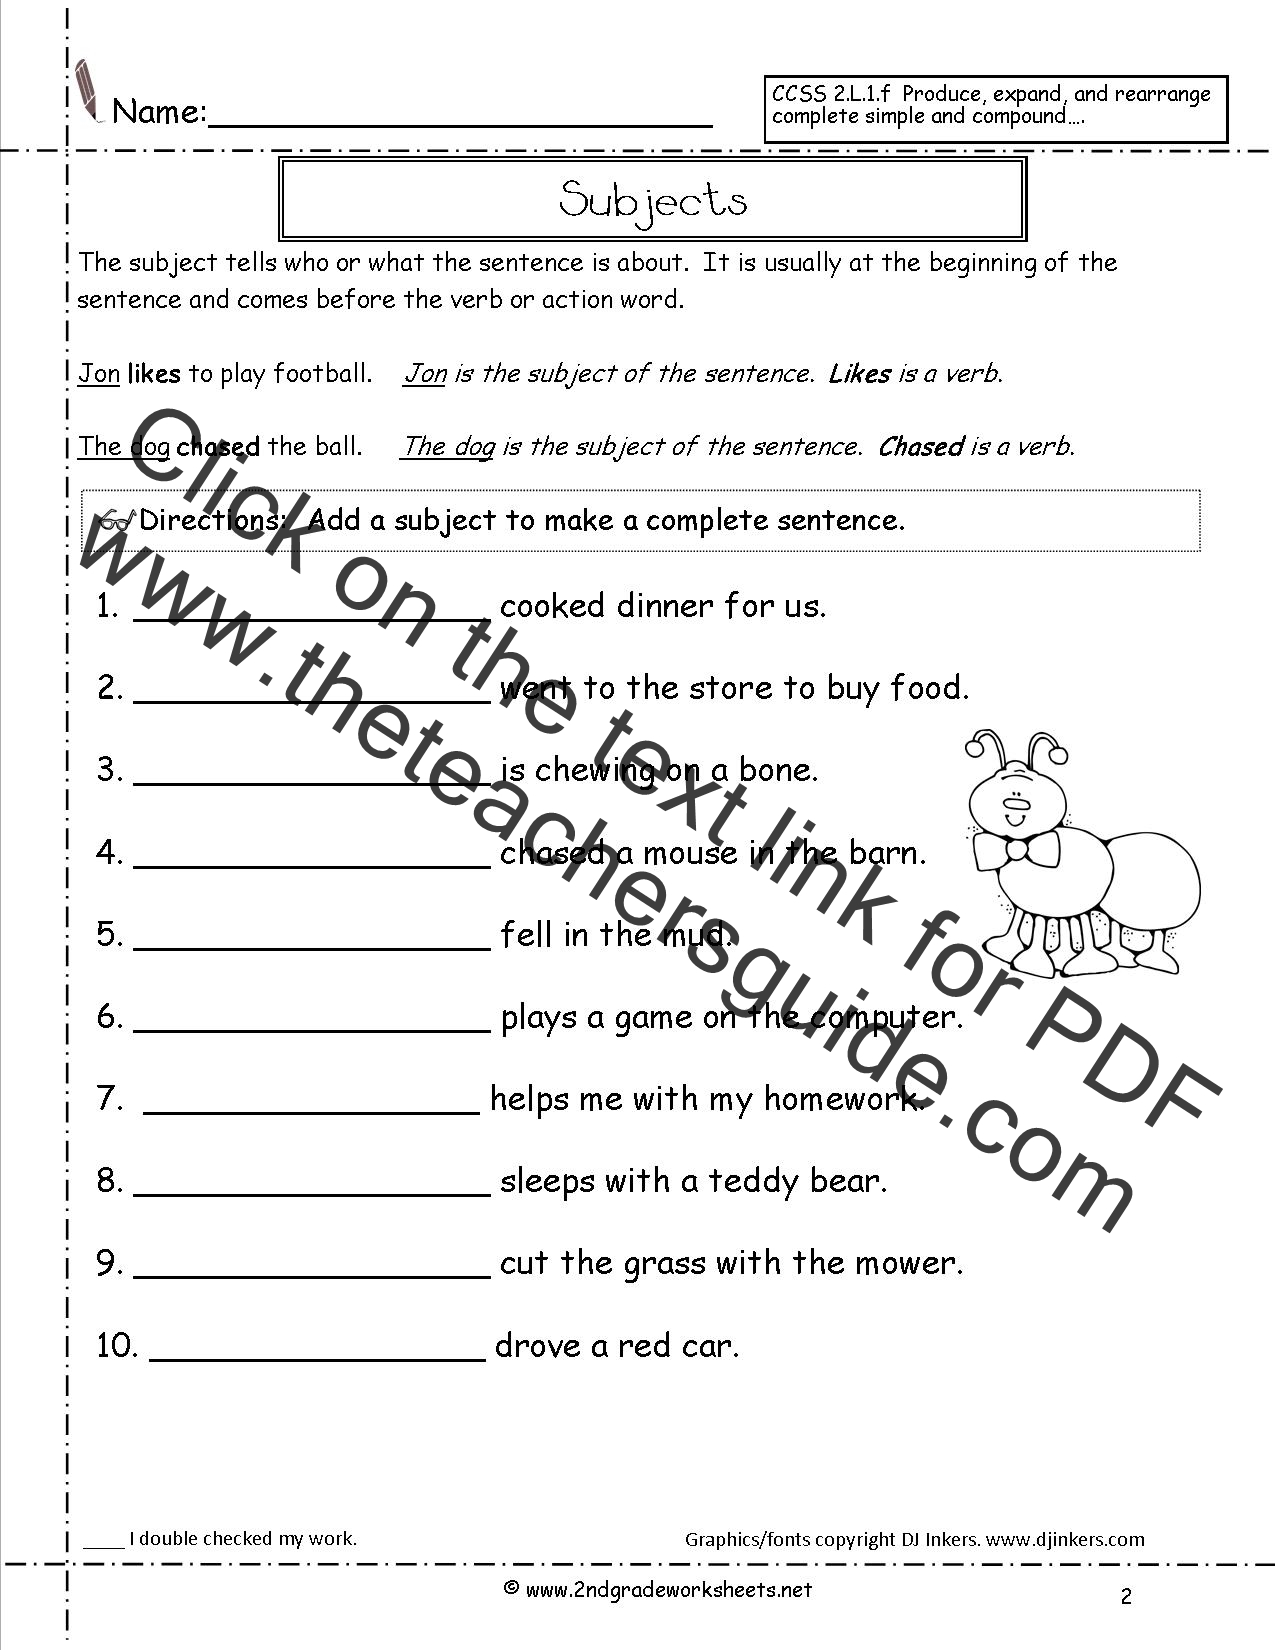 Printables Four Kinds Of Sentences Worksheets second grade sentences worksheets ccss 2 l 1 f subjects worksheet sentence subjects